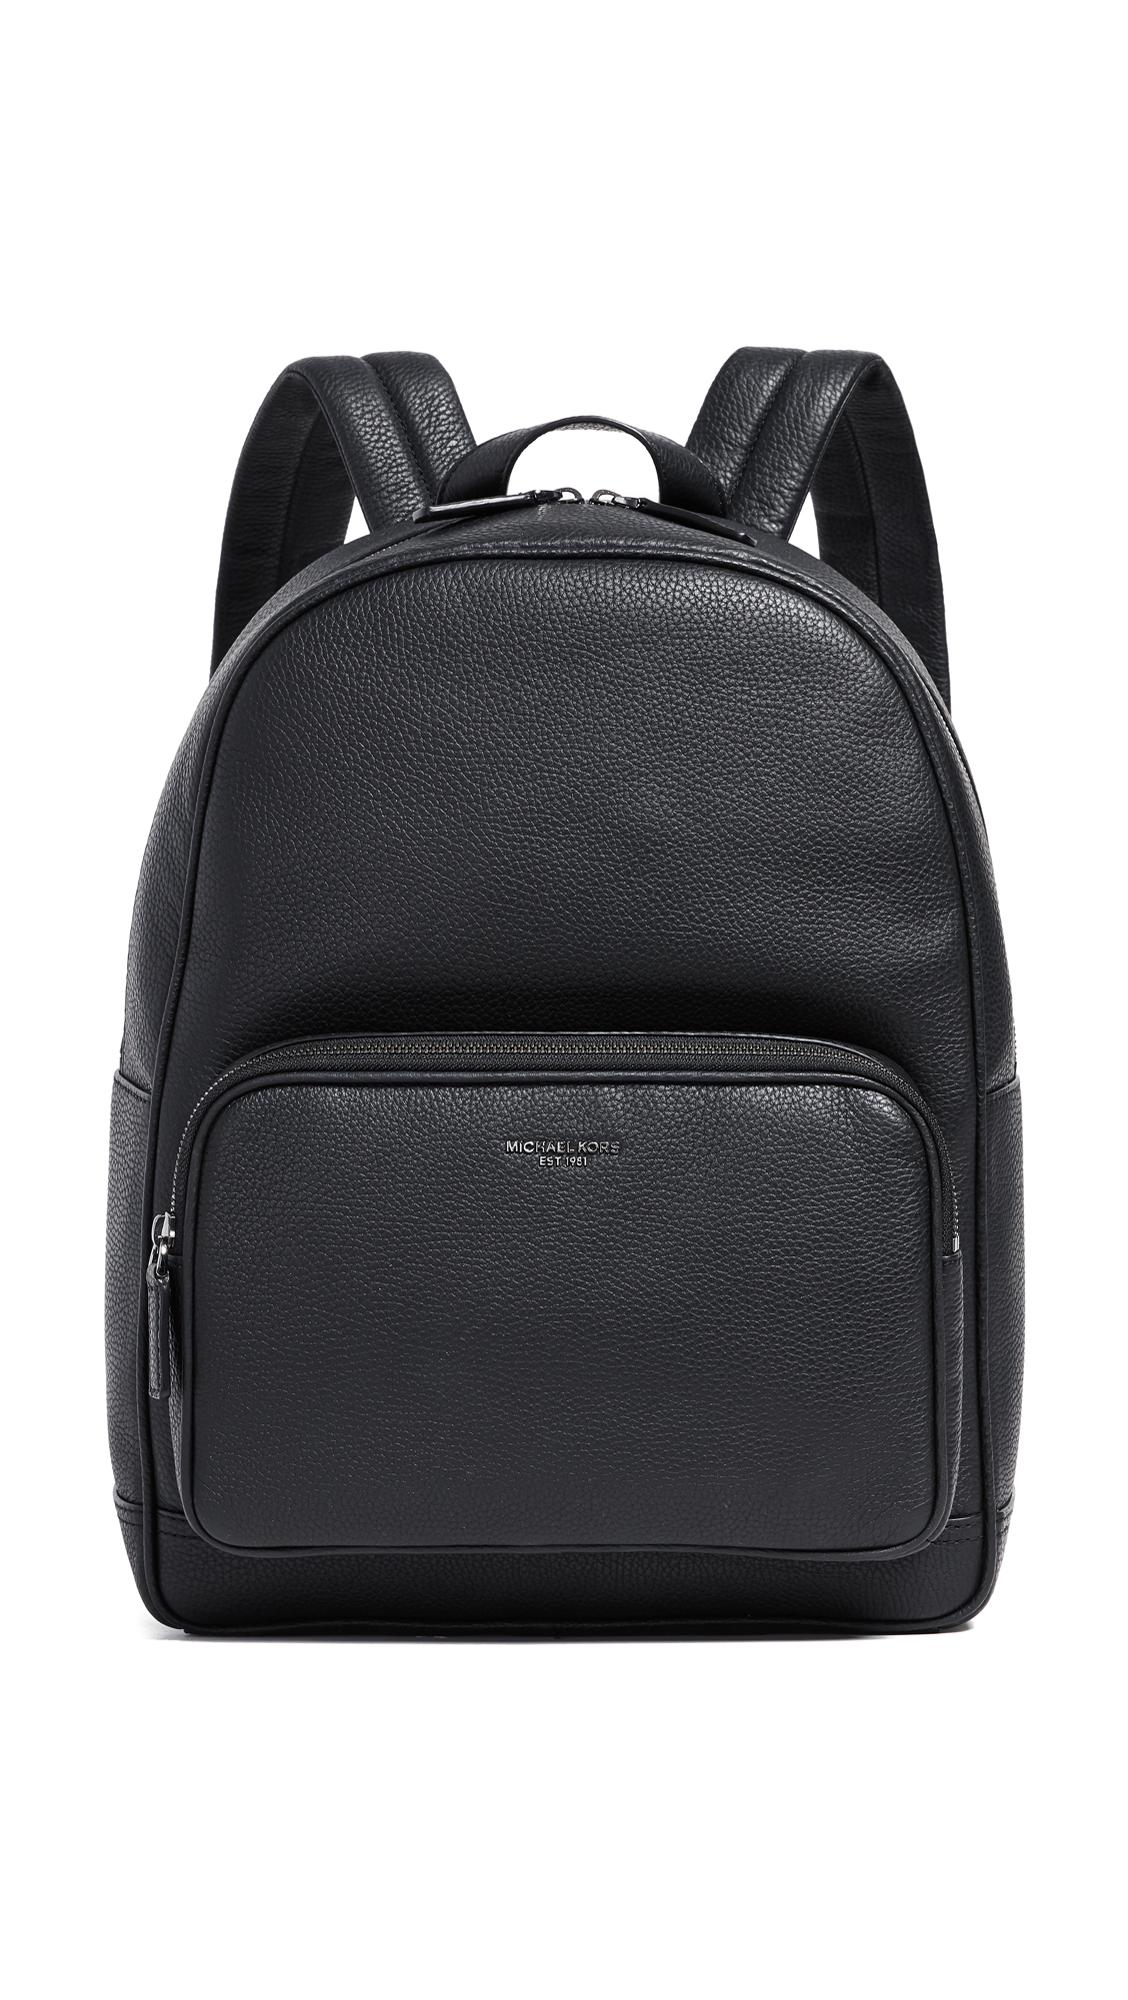 eb50ecd101e8 Lyst - Michael Kors Bryant Pebble Backpack in Black for Men